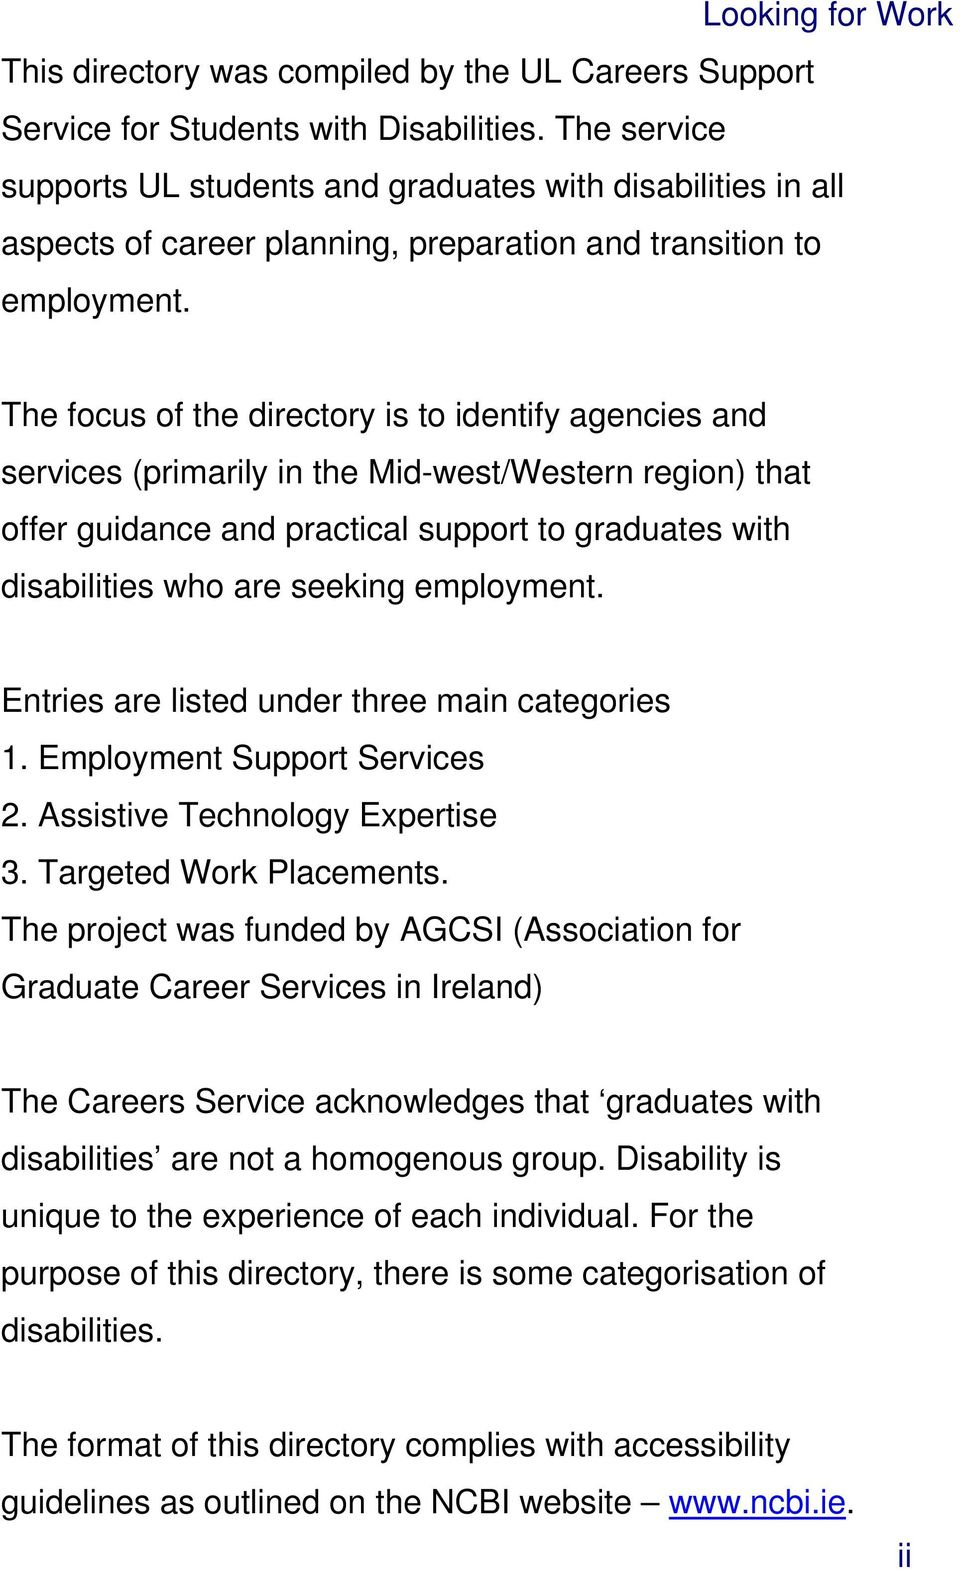 The focus of the directory is to identify agencies and services (primarily in the Mid-west/Western region) that offer guidance and practical support to graduates with disabilities who are seeking